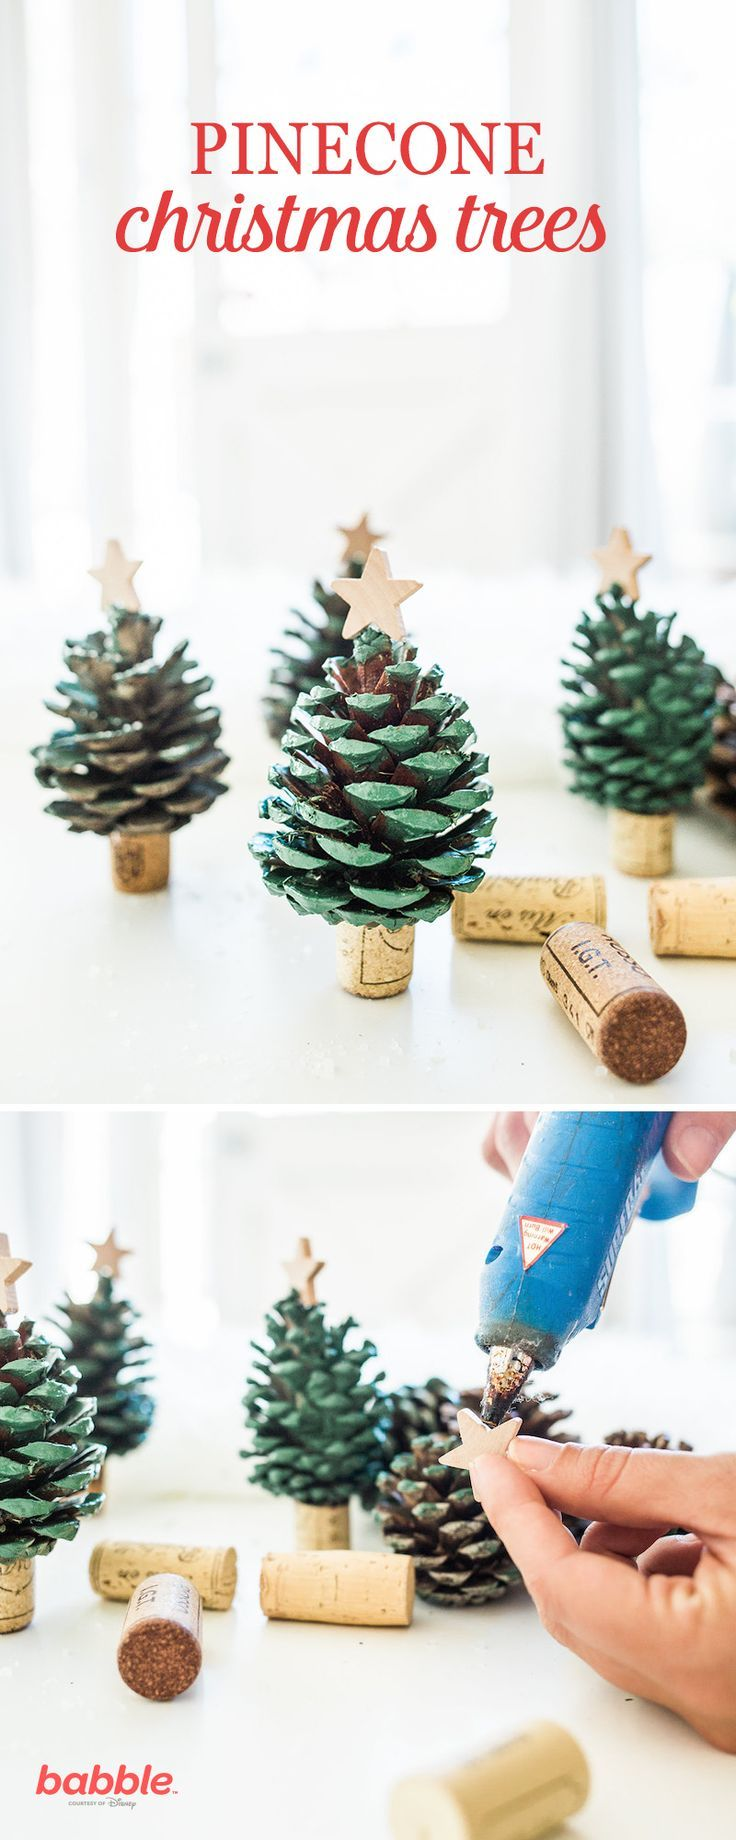 Spread some holiday cheer and decorate your home with these DIY Pinecone Christm...